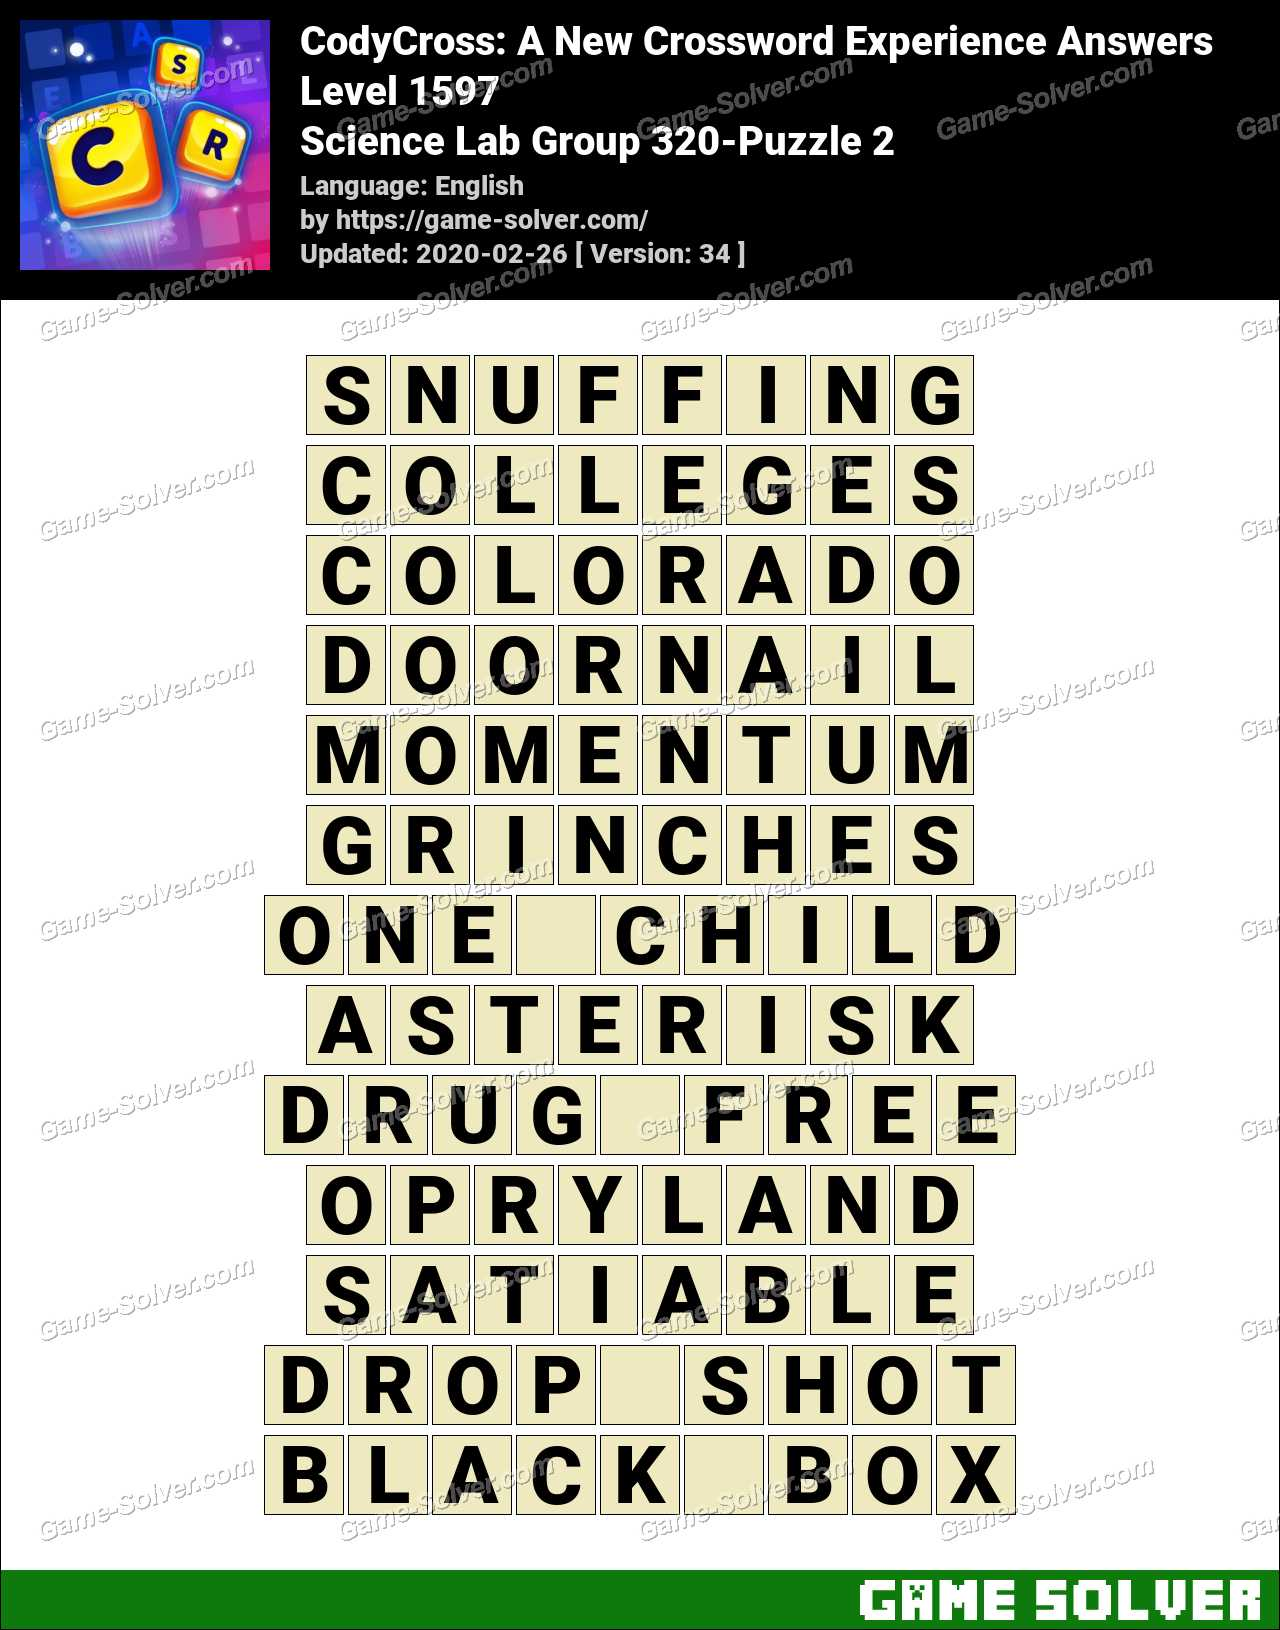 CodyCross Science Lab Group 320-Puzzle 2 Answers